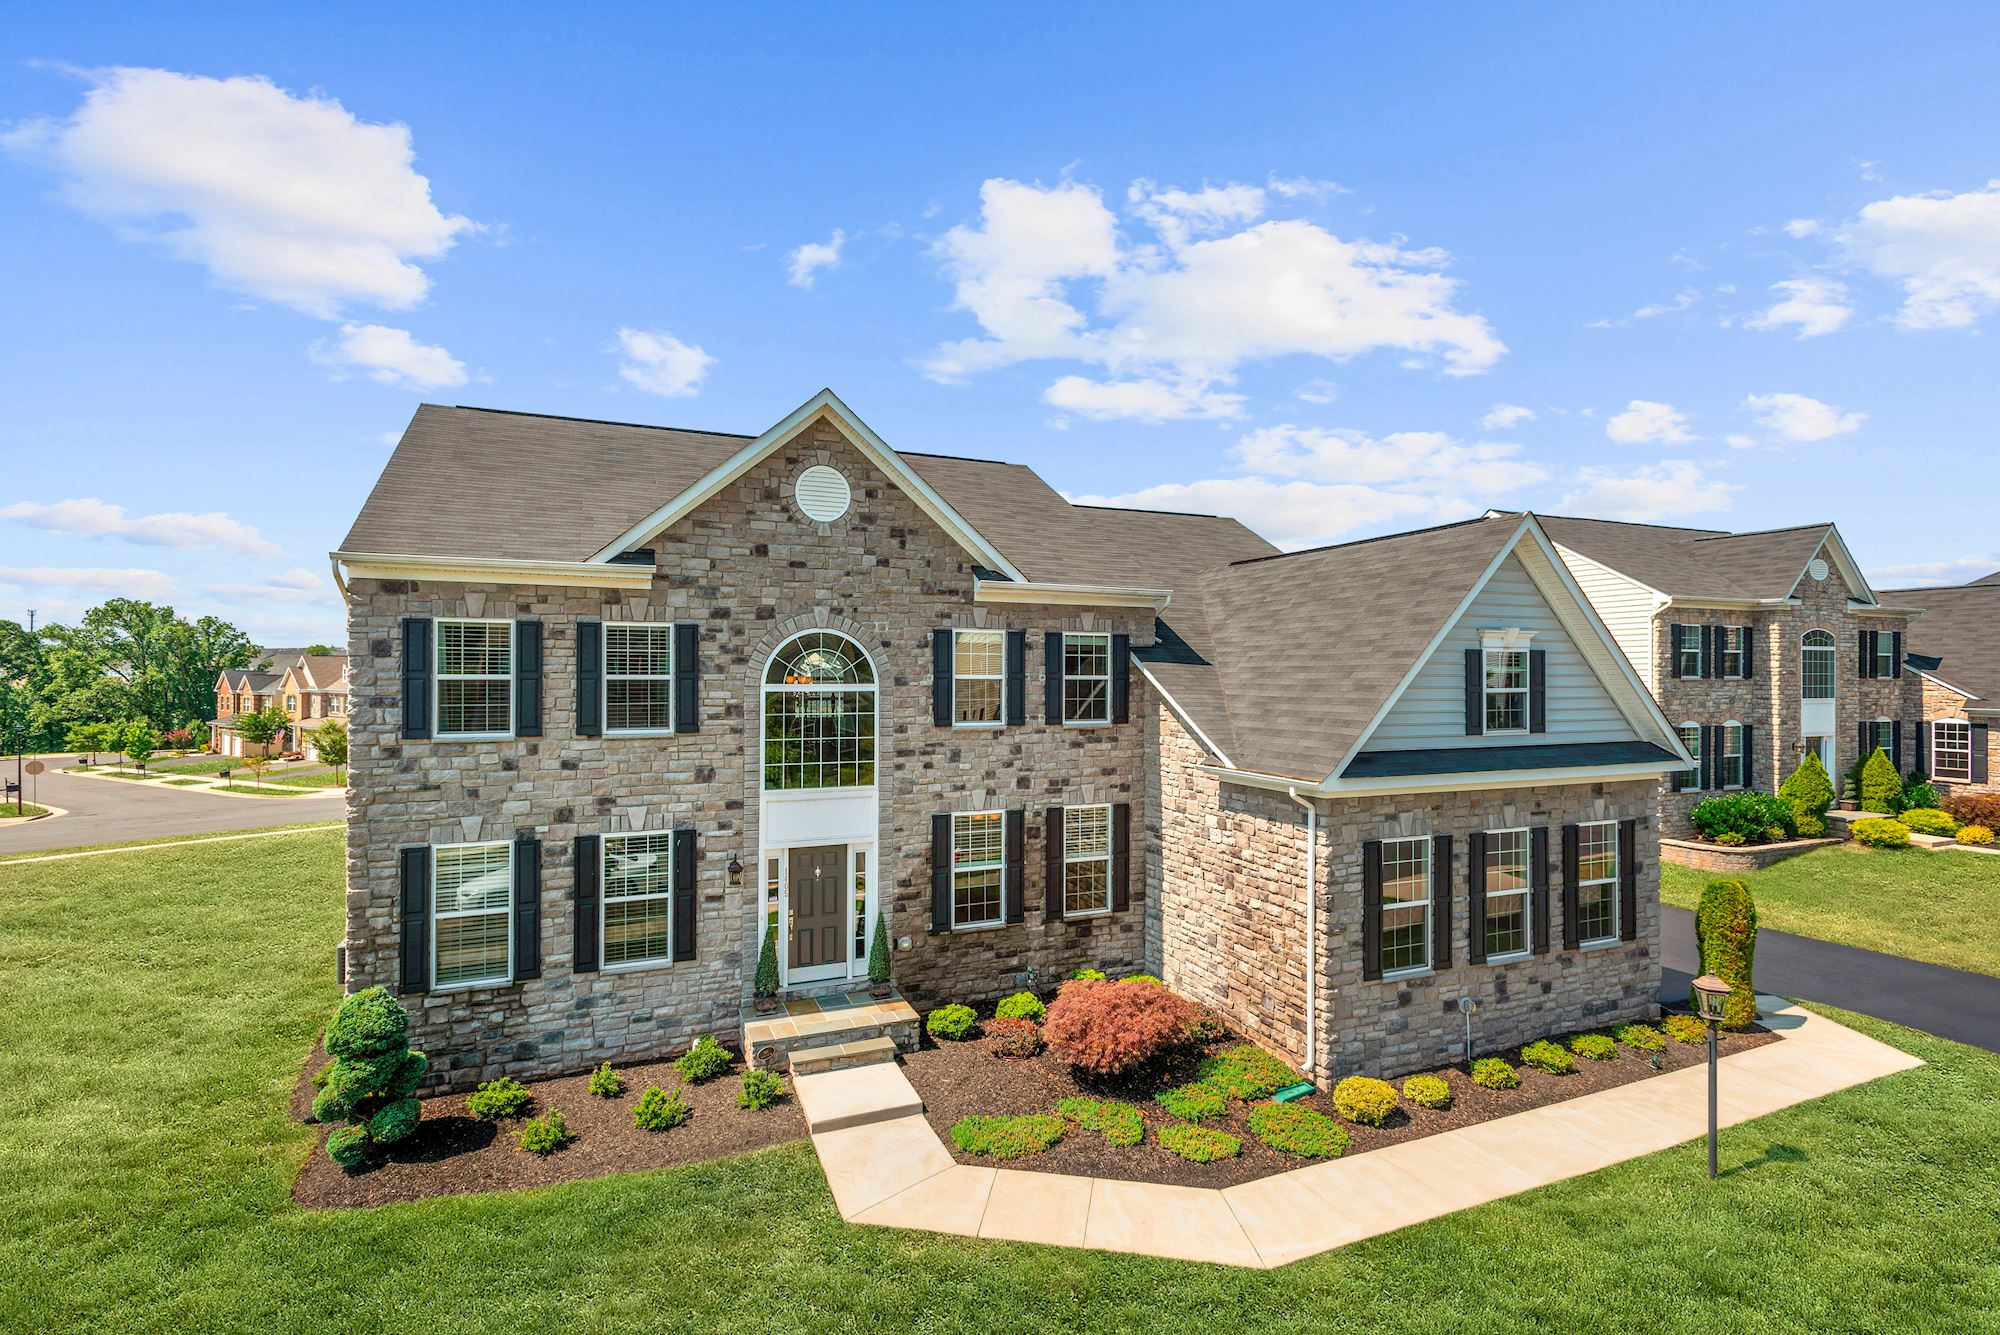 River Pointe Estates in Leesburg, VA: Elegant K. Hovnanian Homes